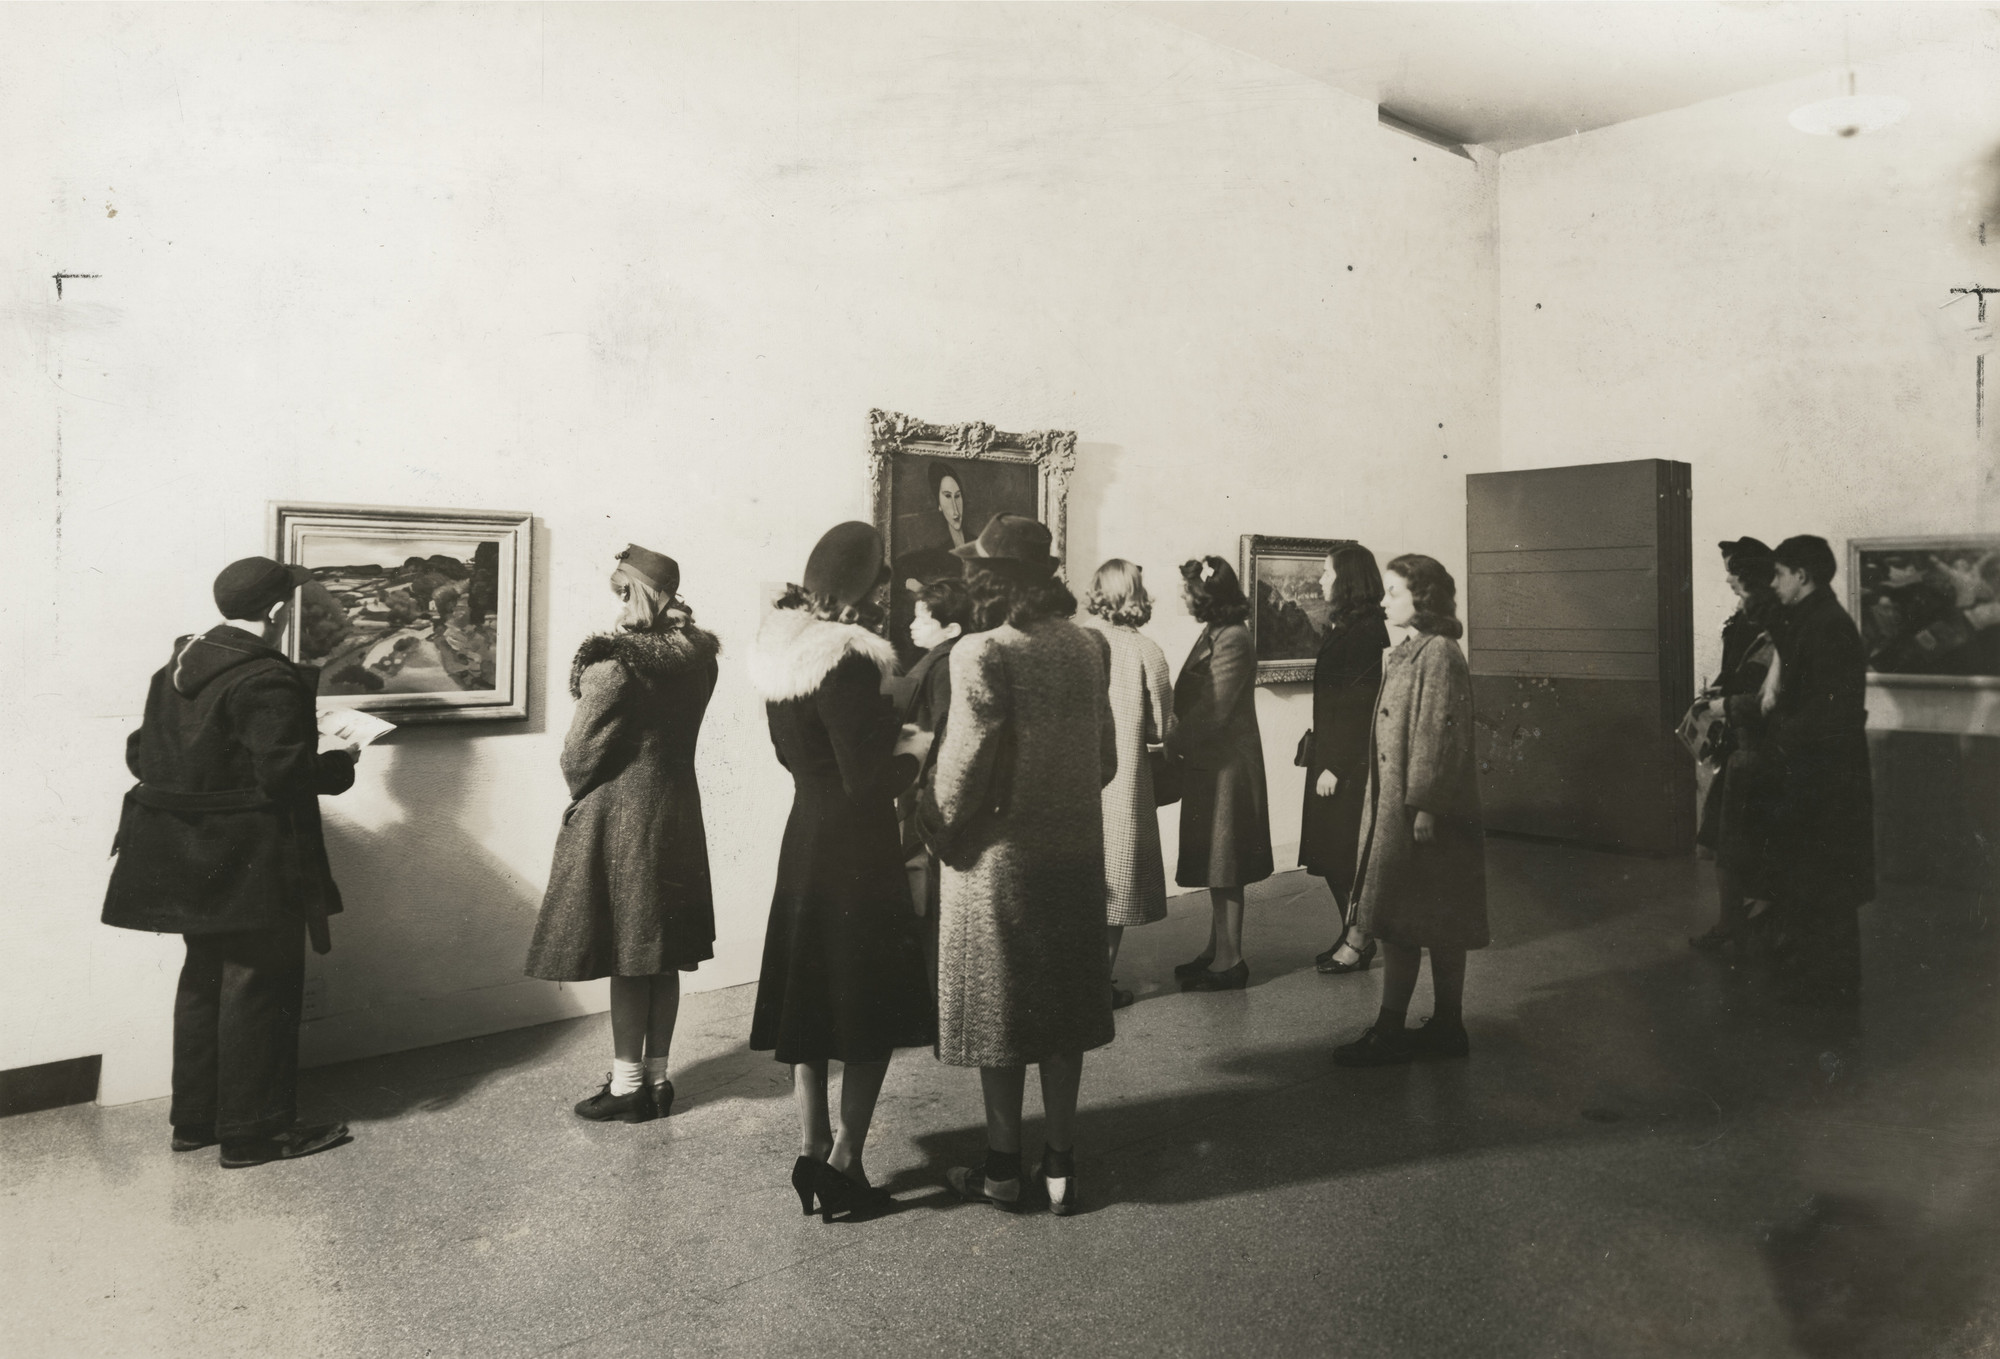 "Installation view of the exhibition, ""12 Favorites:  Paintings Selected by Students from the Museum Collection"" January 31, 1940–March 1, 1940. Victor D'Amico Papers, VI.7. The Museum of Modern Art Archives, New York. IN96.1. Photograph by Soichi Sunami."